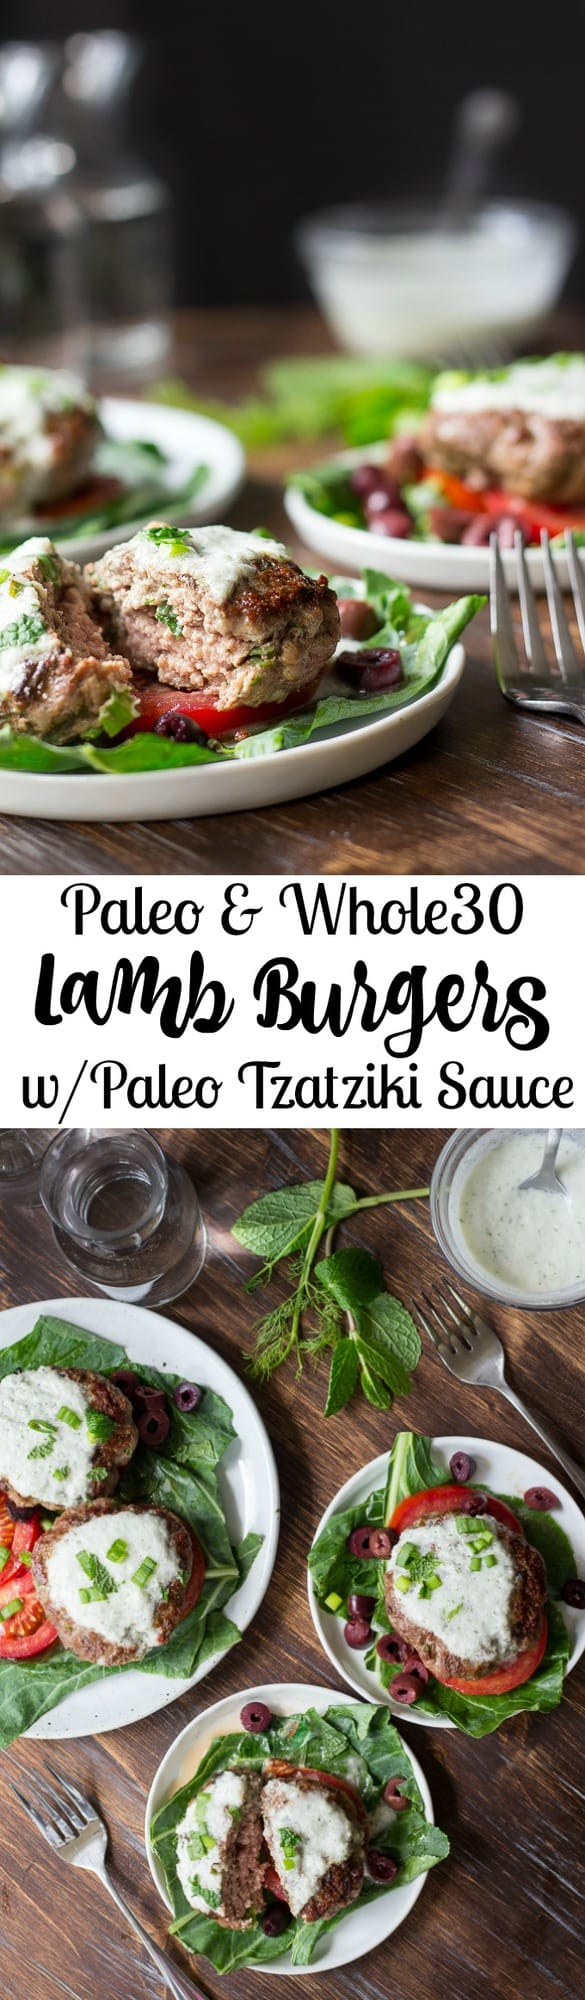 paleo-and-whole30-lamb-burgers-with-paleo-tzatziki-sauce